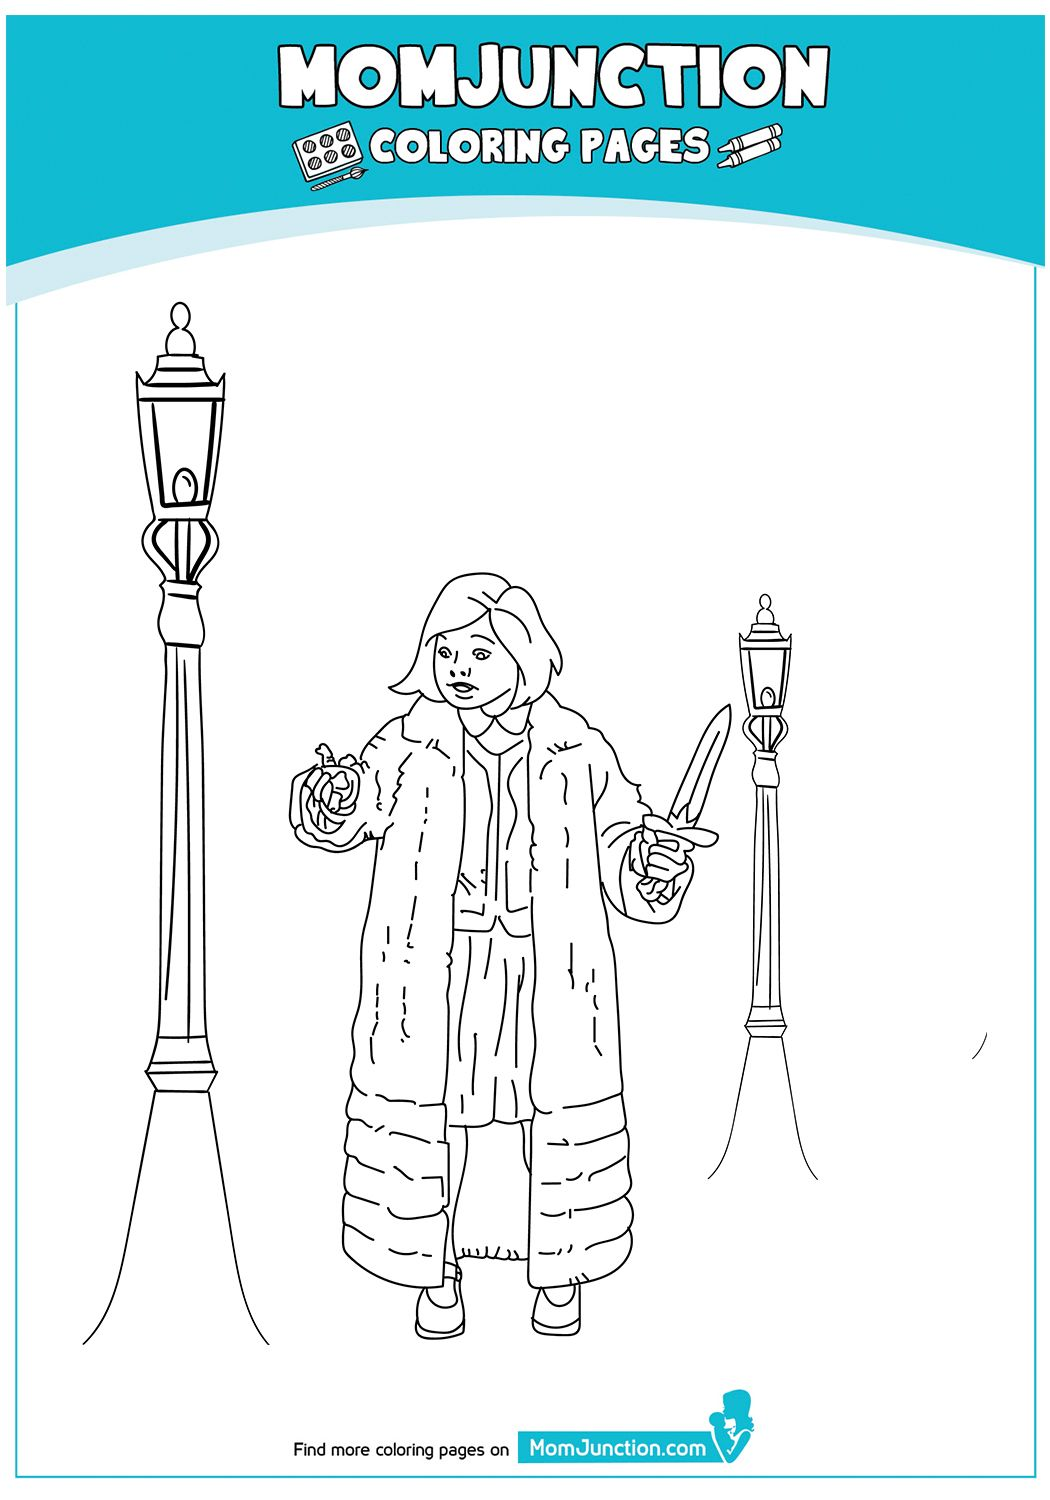 LucyPevensie17 Mom junction, Coloring pages, Personal